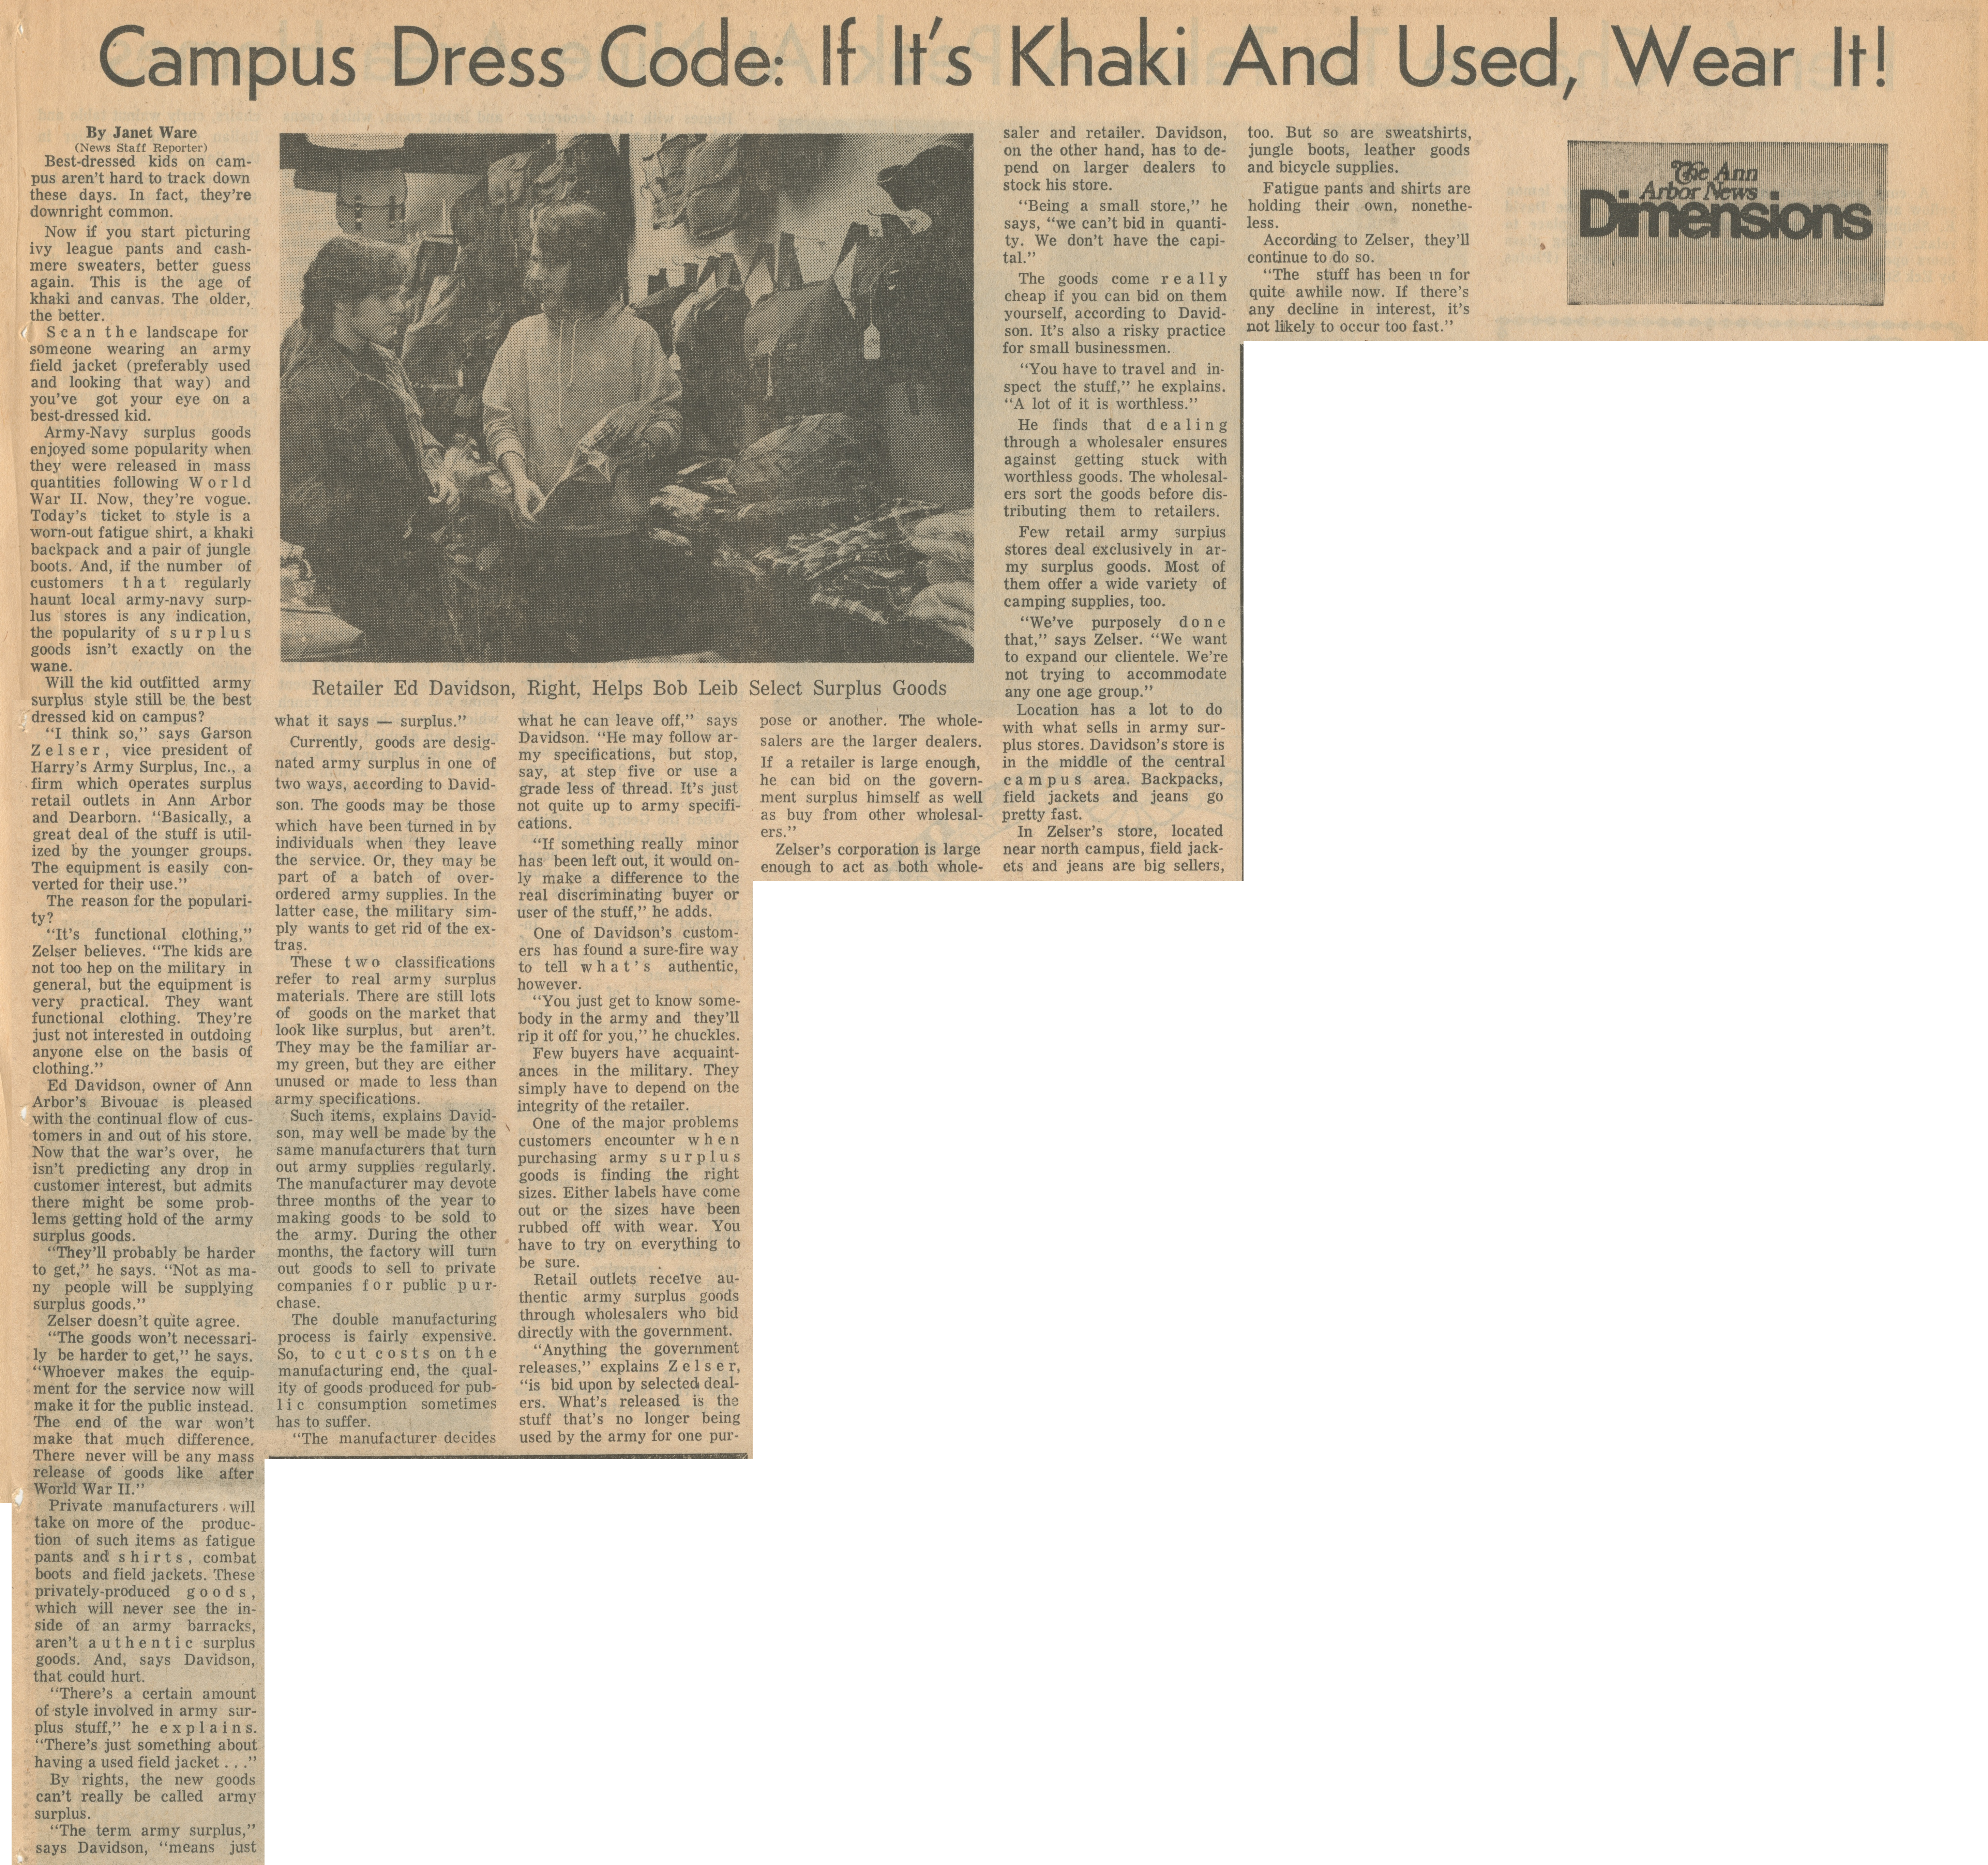 Campus Dress Code: If It's Khaki And Used, Wear It! image